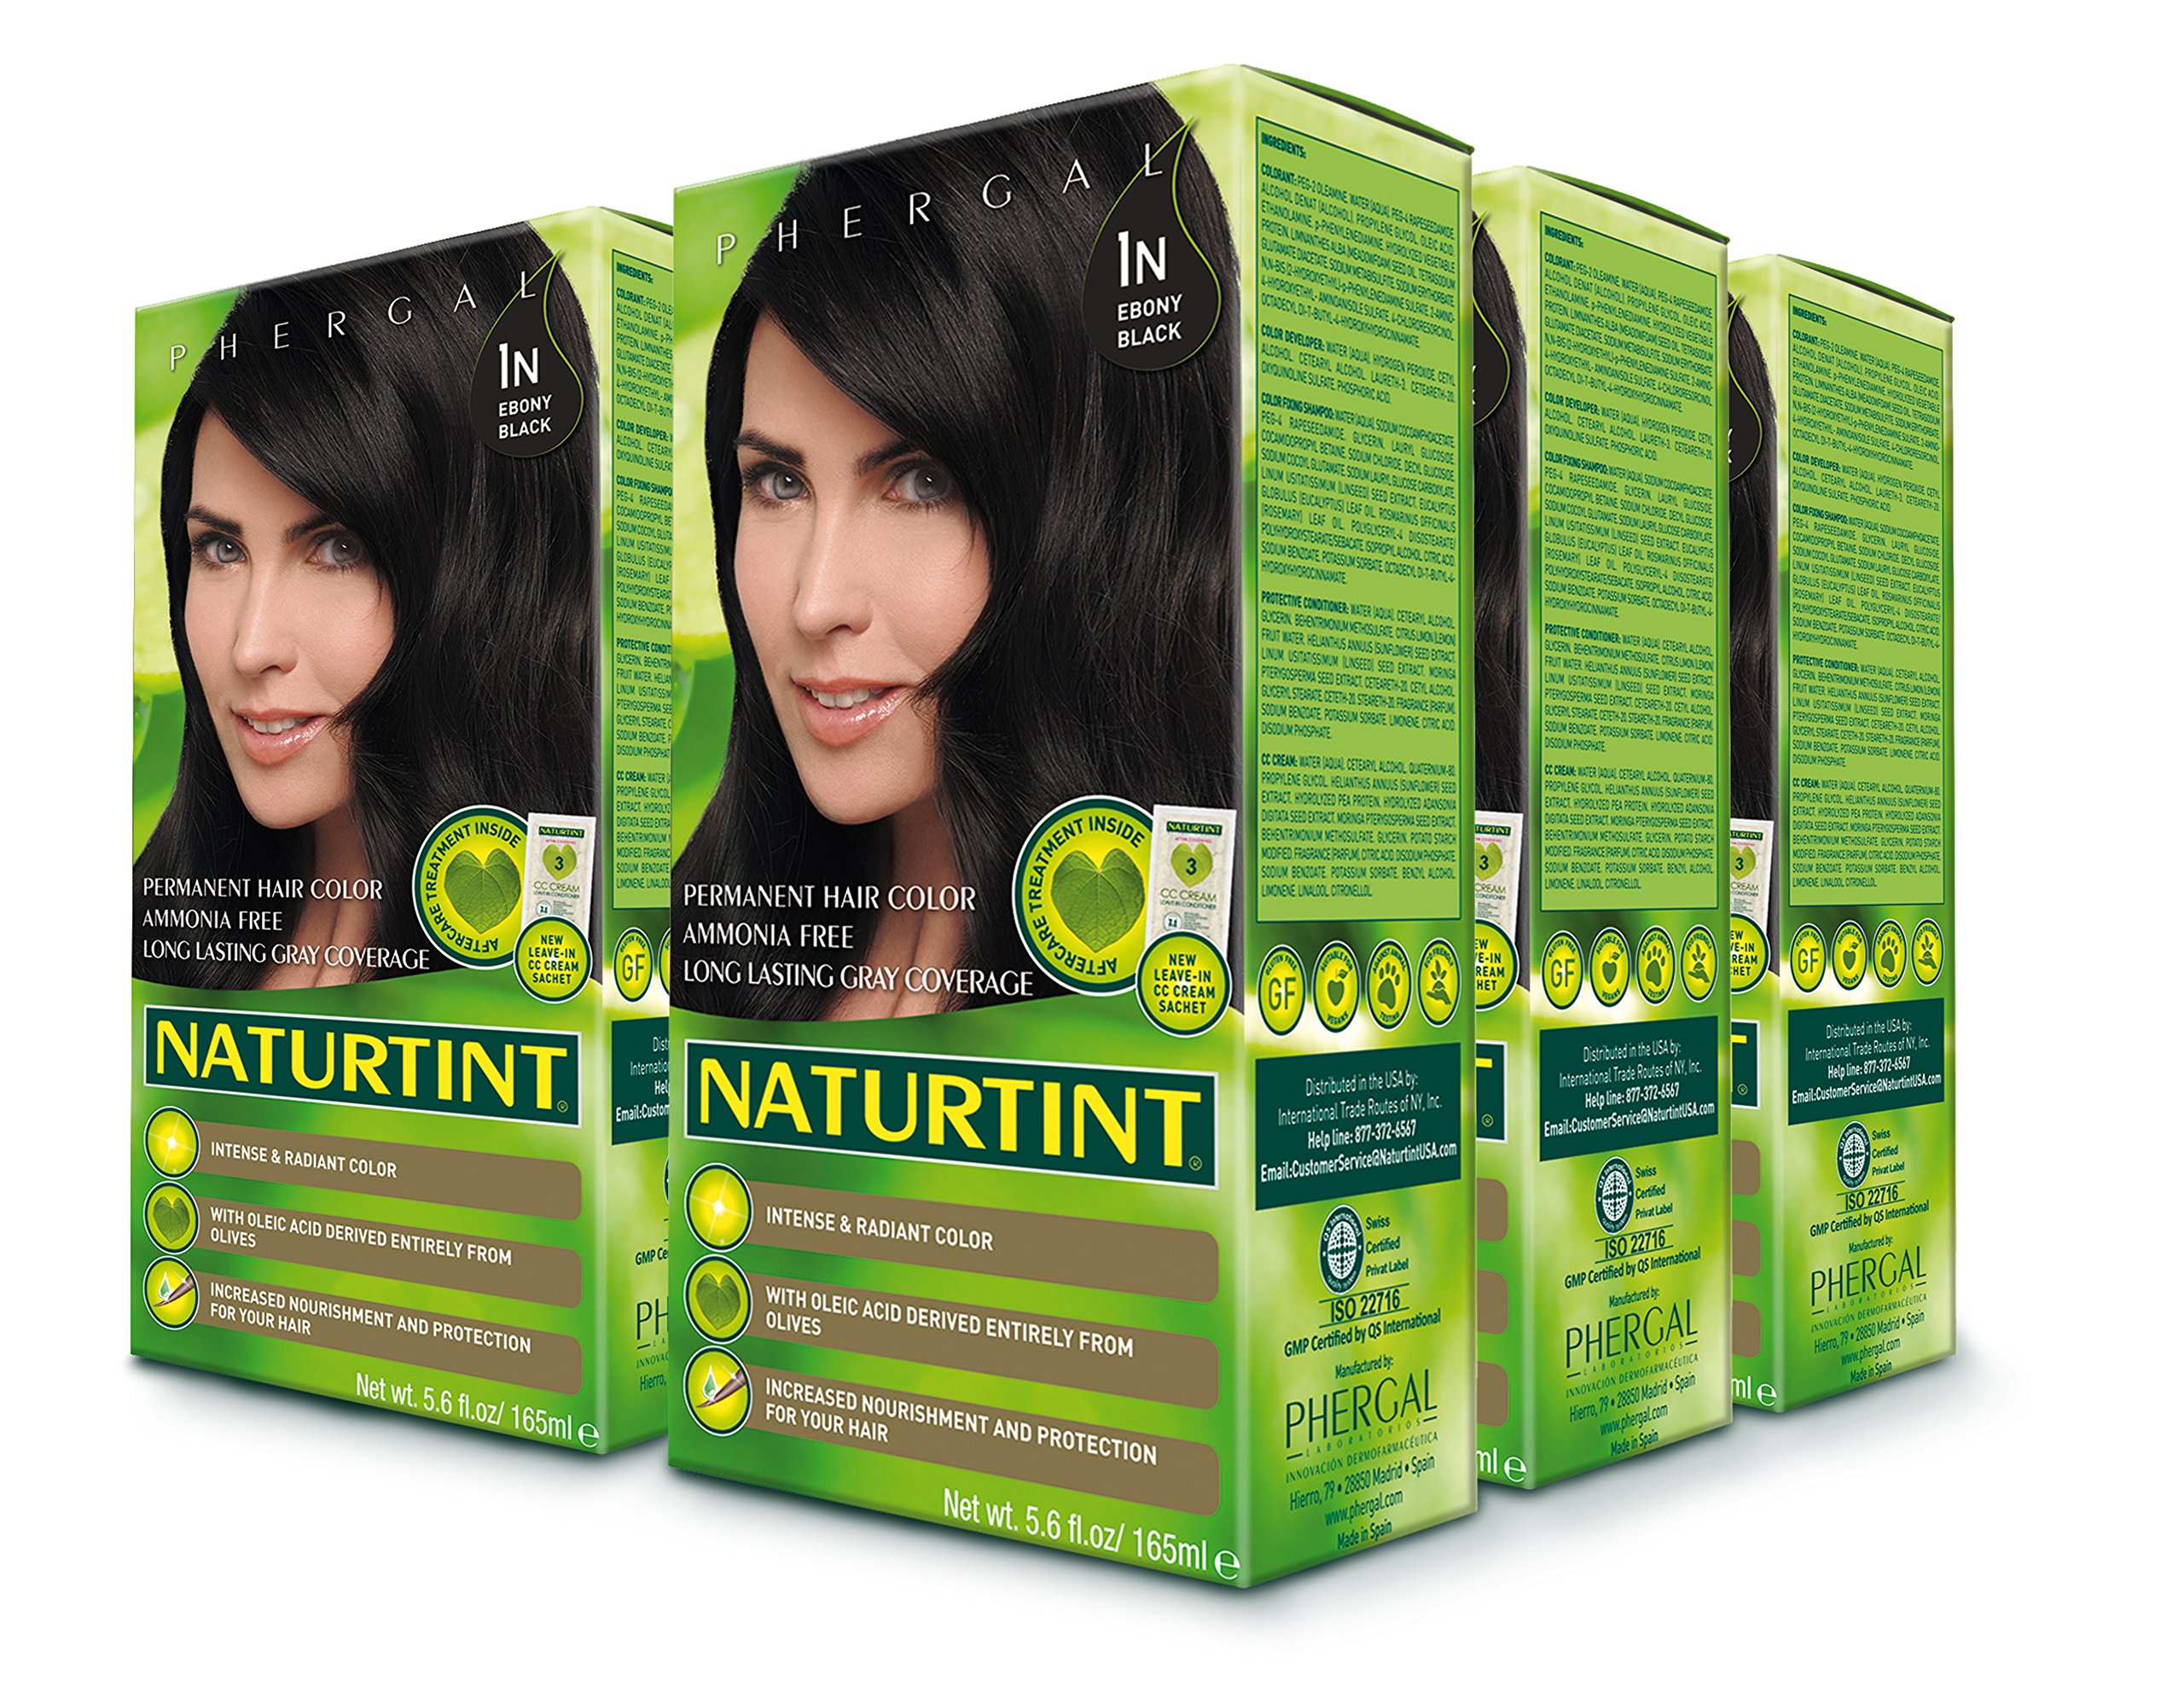 Naturtint Permanent Hair Color - 1N Ebony Black, 5.28 fl oz (6-pack)